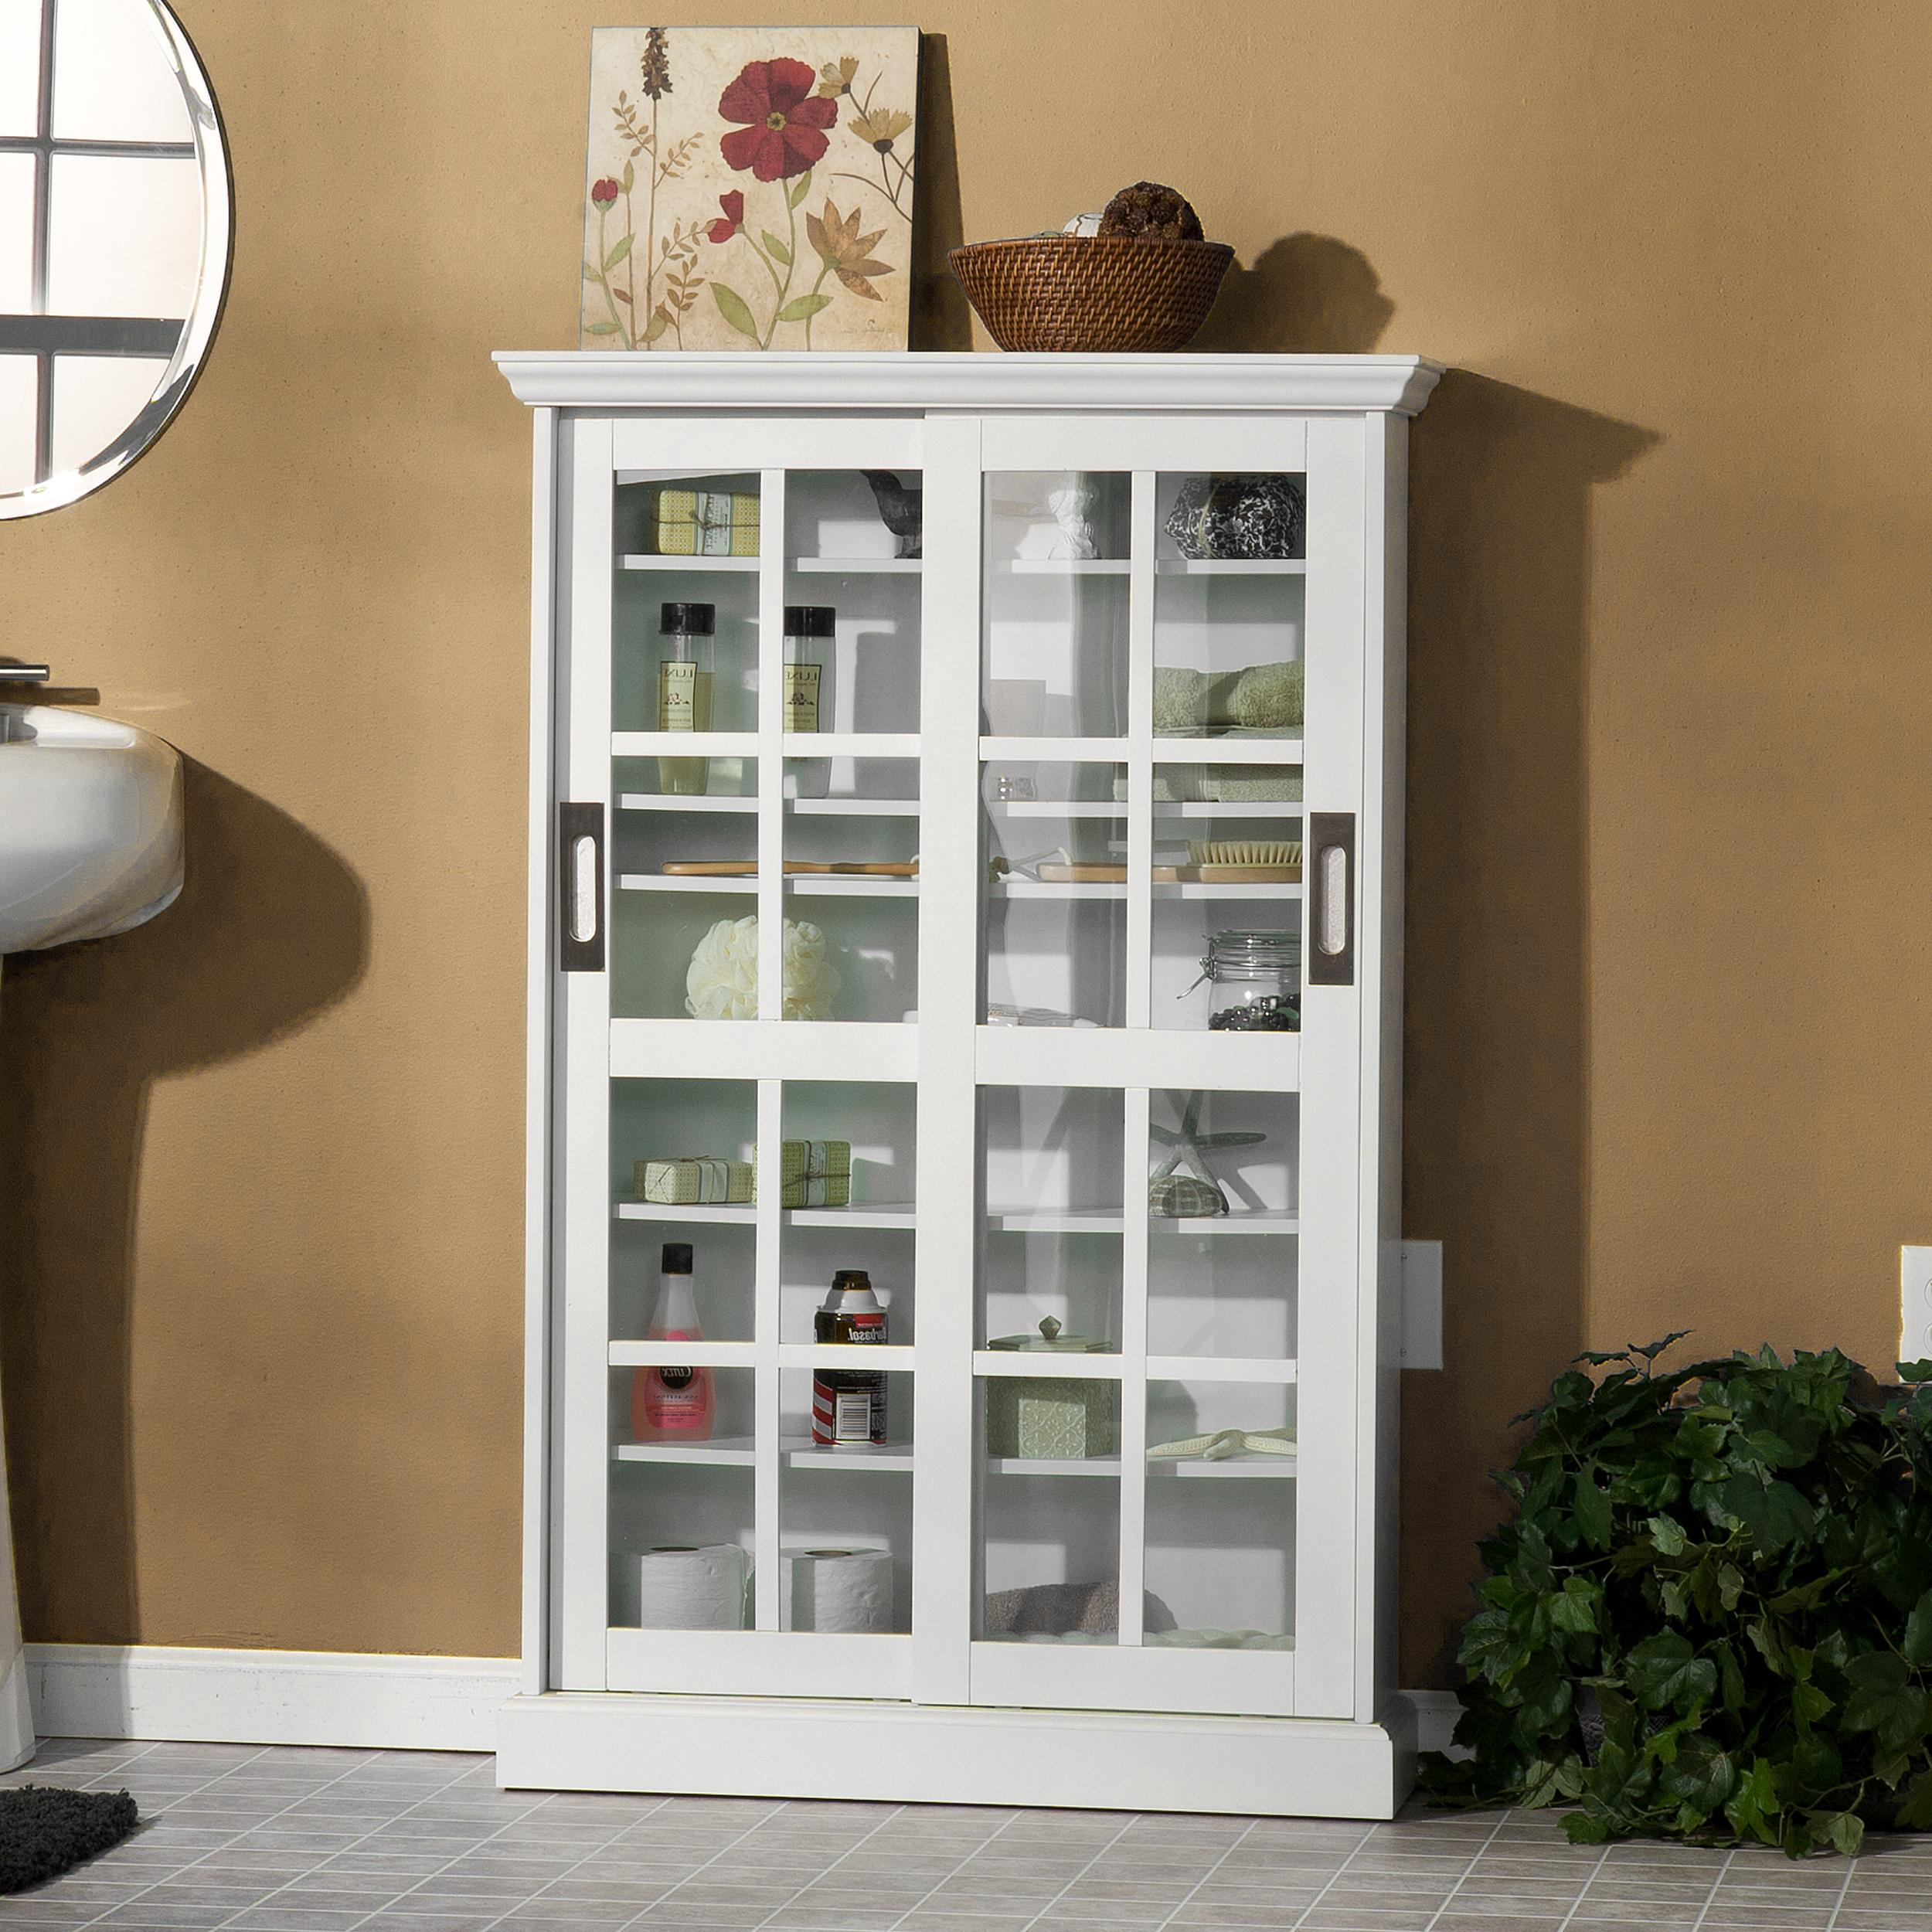 Amazoncom Sliding Door Media Cabinet White Kitchen Dining - Kitchen cabinets with sliding doors